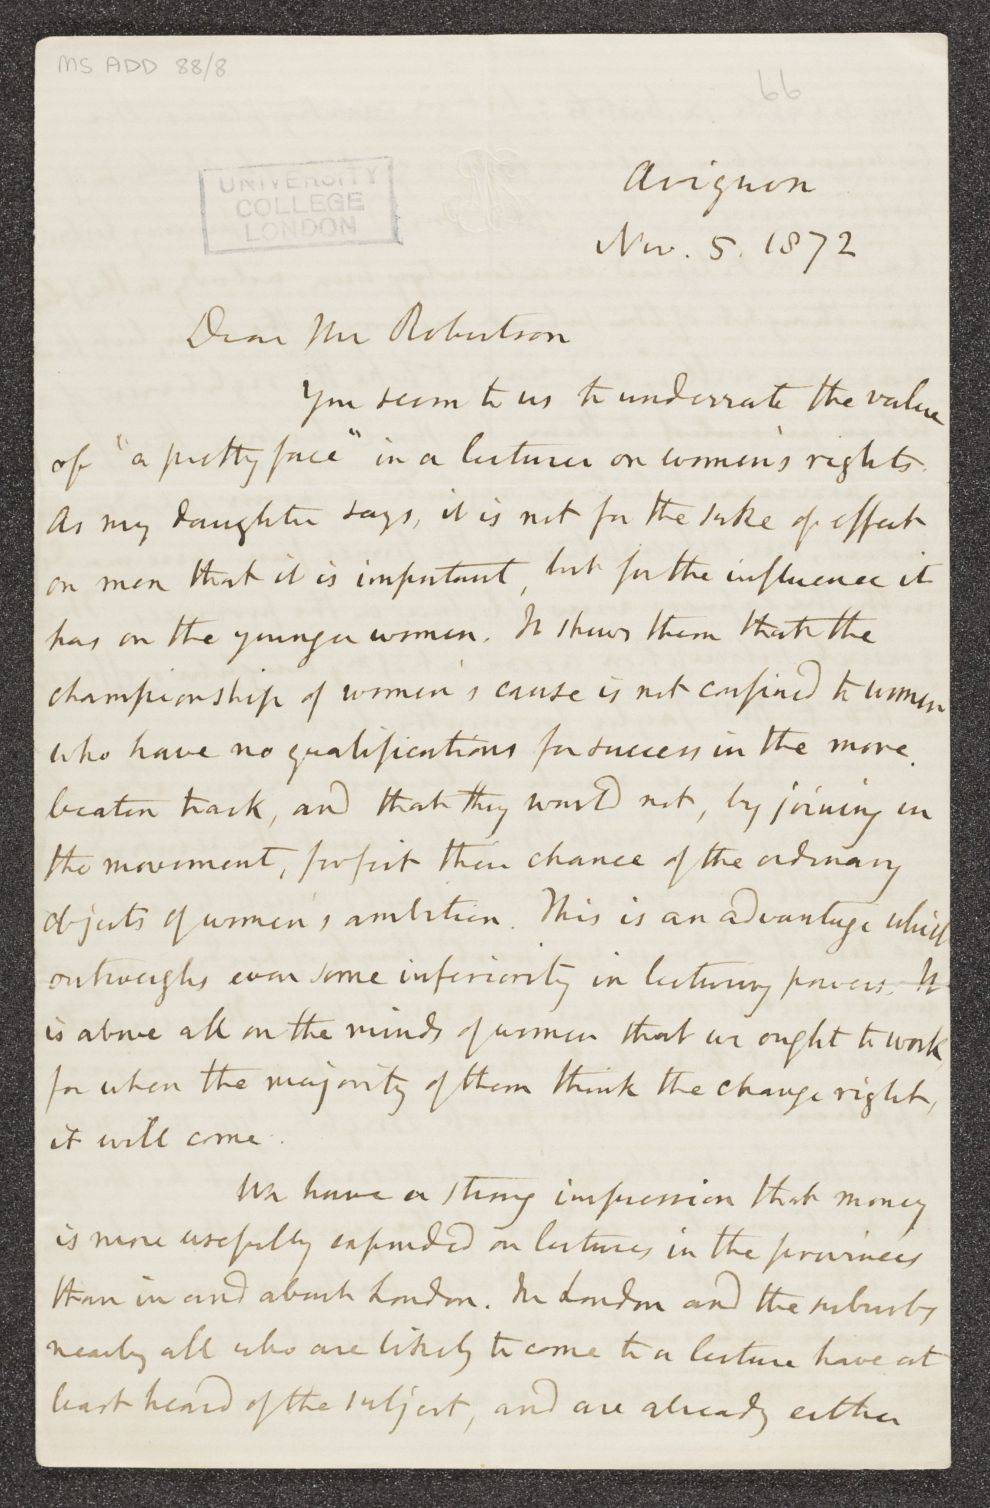 Letter from John Stuart Mill to George Croom Robertson